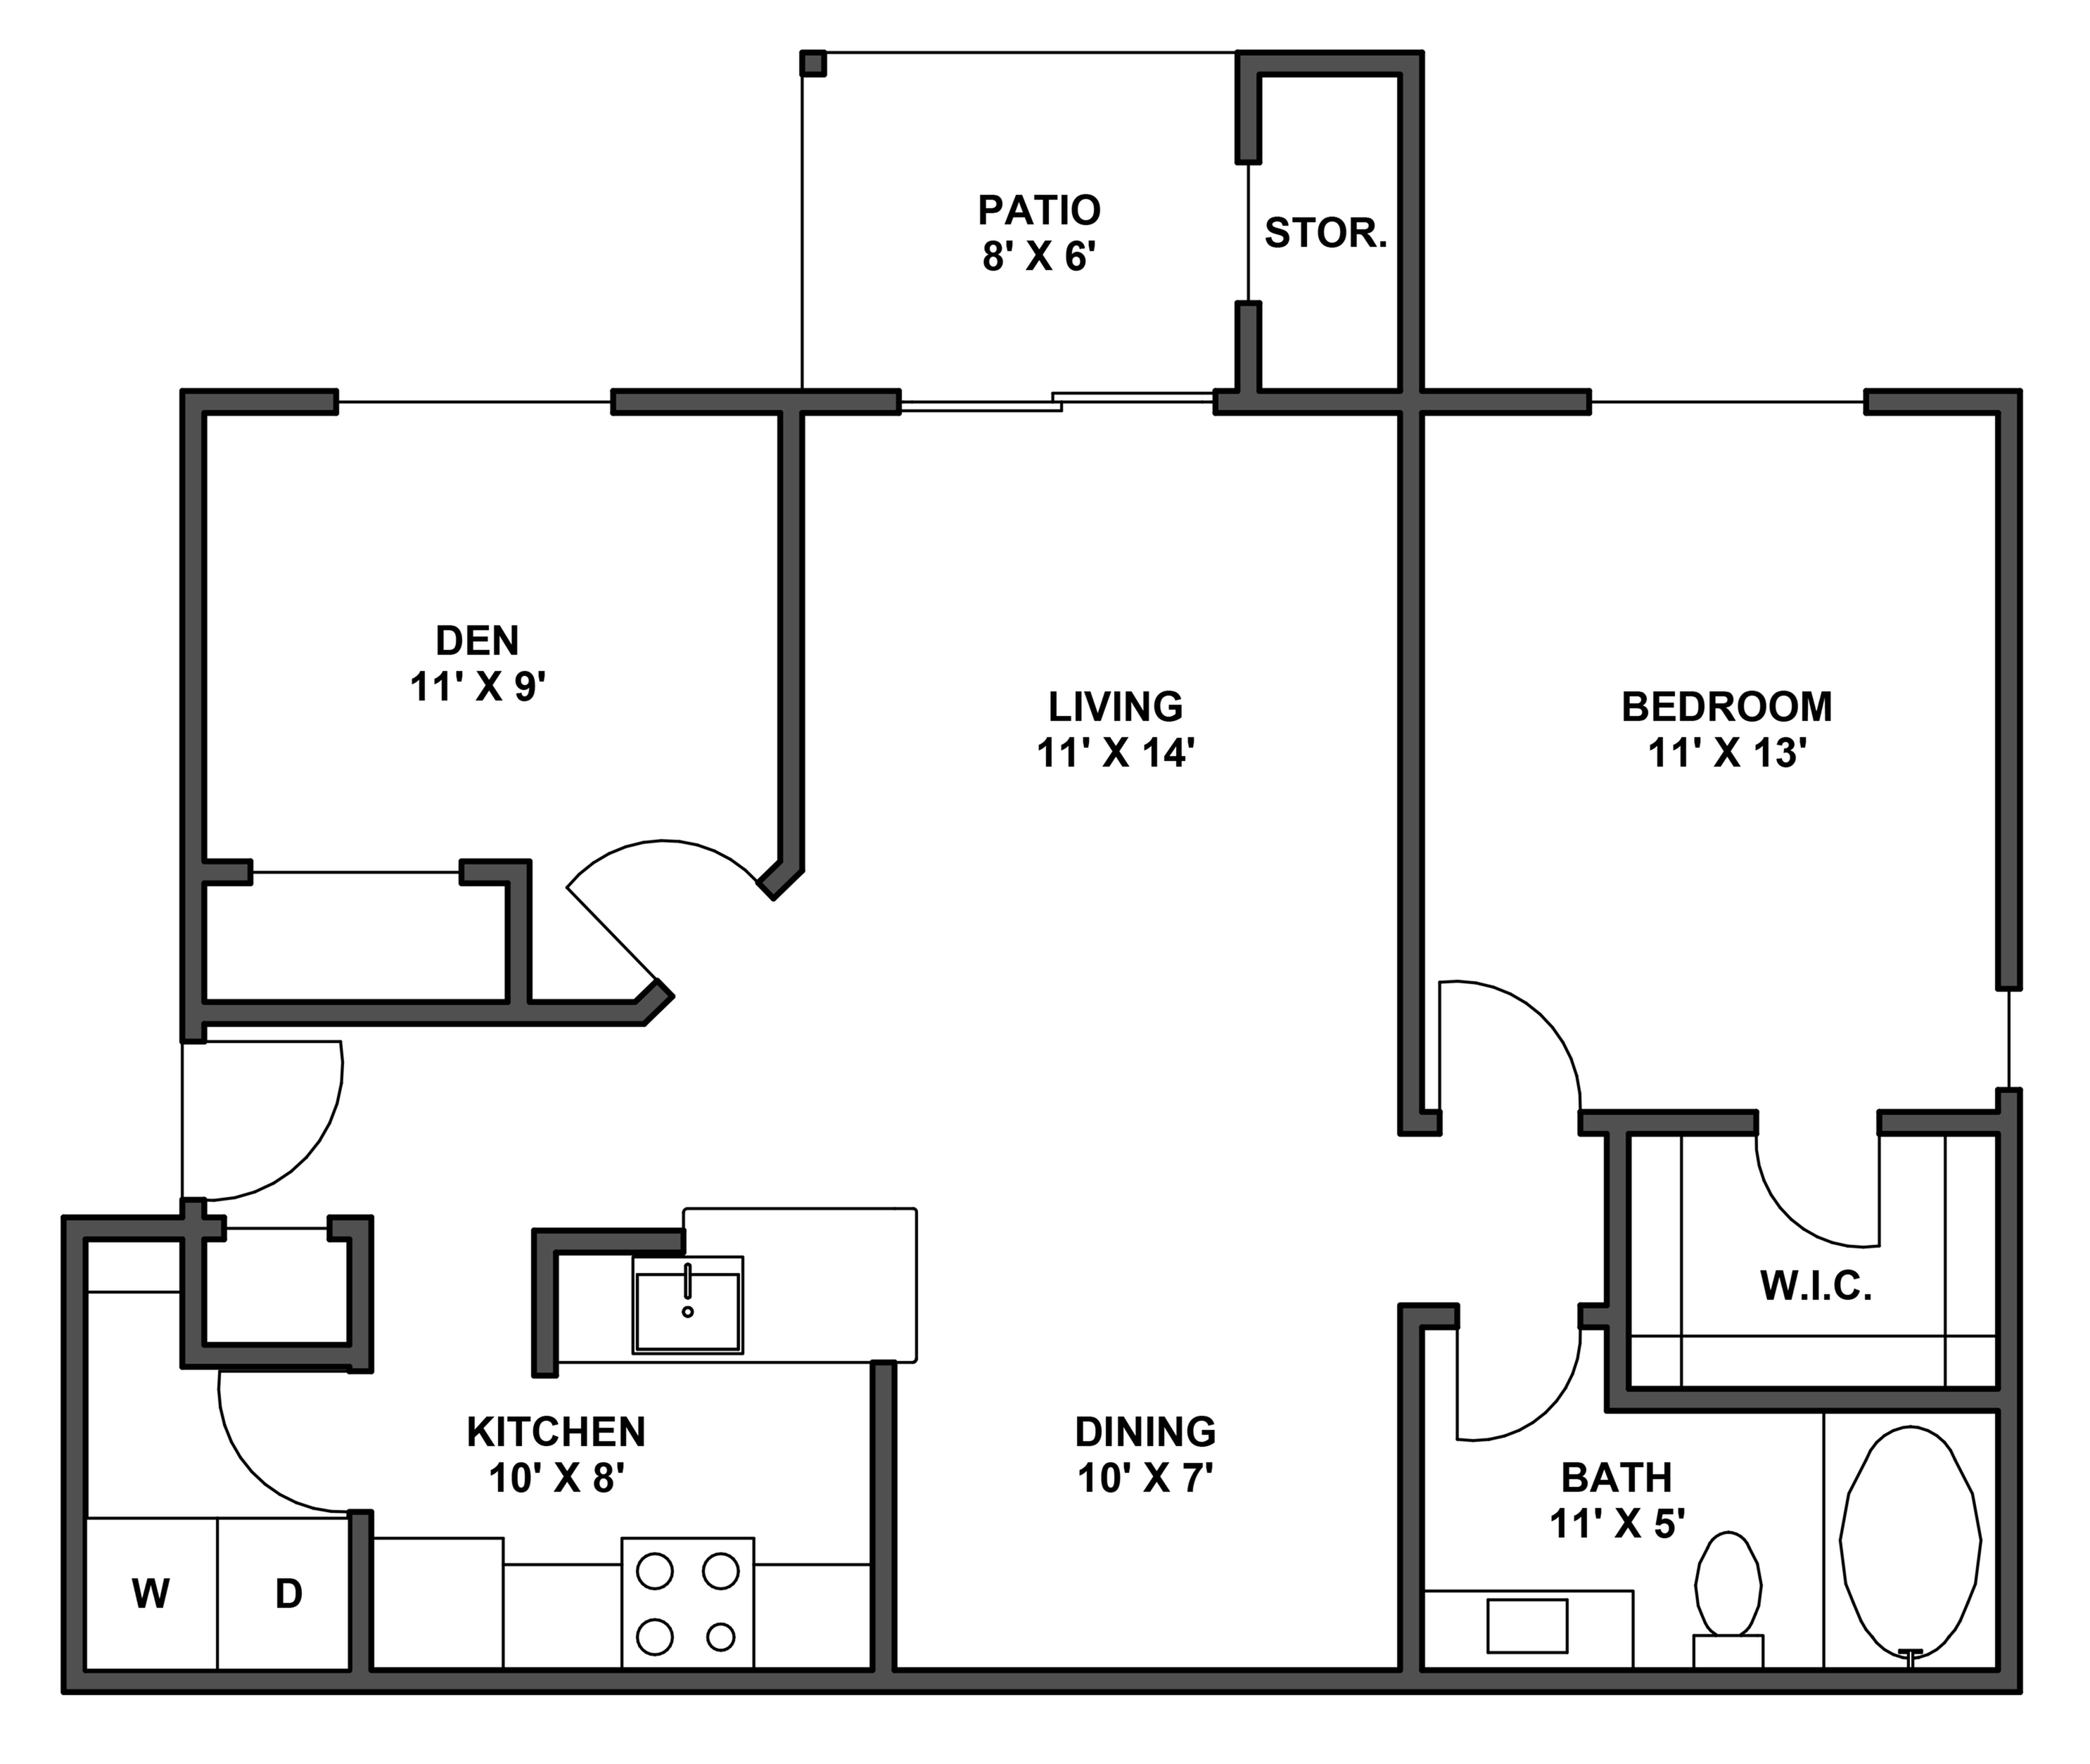 One bedroom, one bathroom, kitchen, dining room, living room, patio with storage, two walk in closets, laundry room, A5 floor plan, 870 square foot.